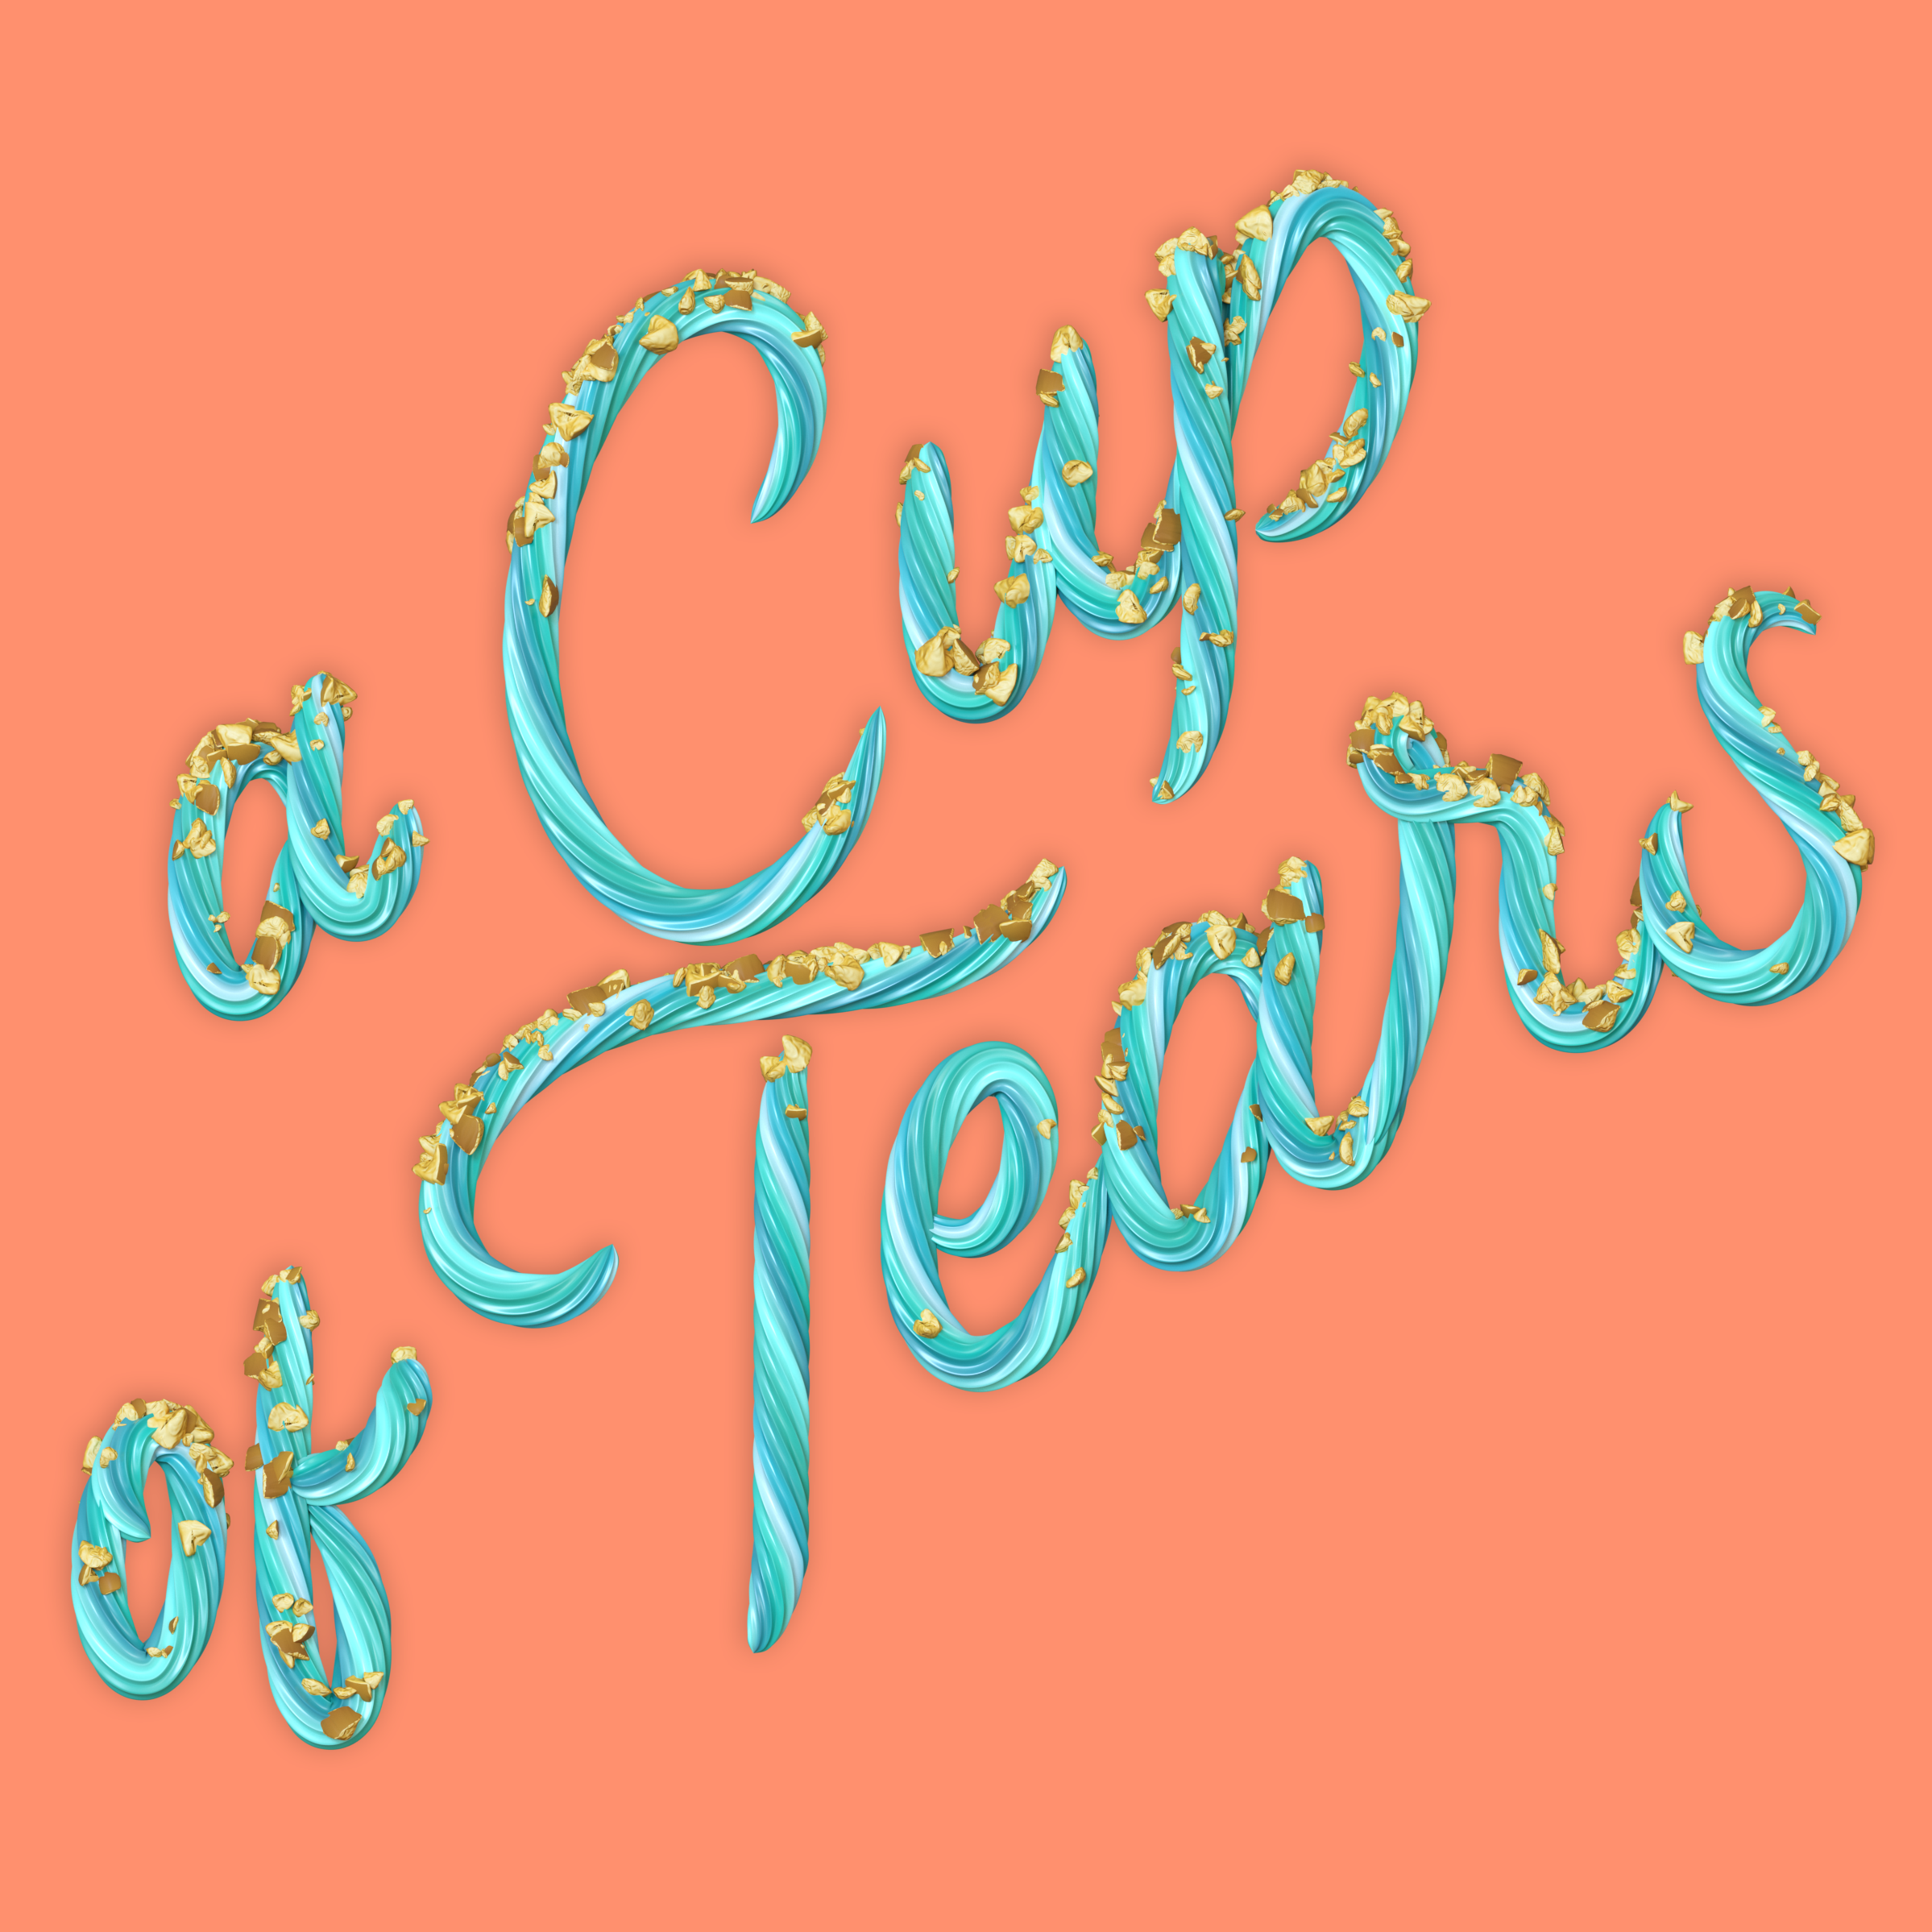 """""""A Cup of Tears"""" 3D type lettering made of cake frosting by Noah Camp"""